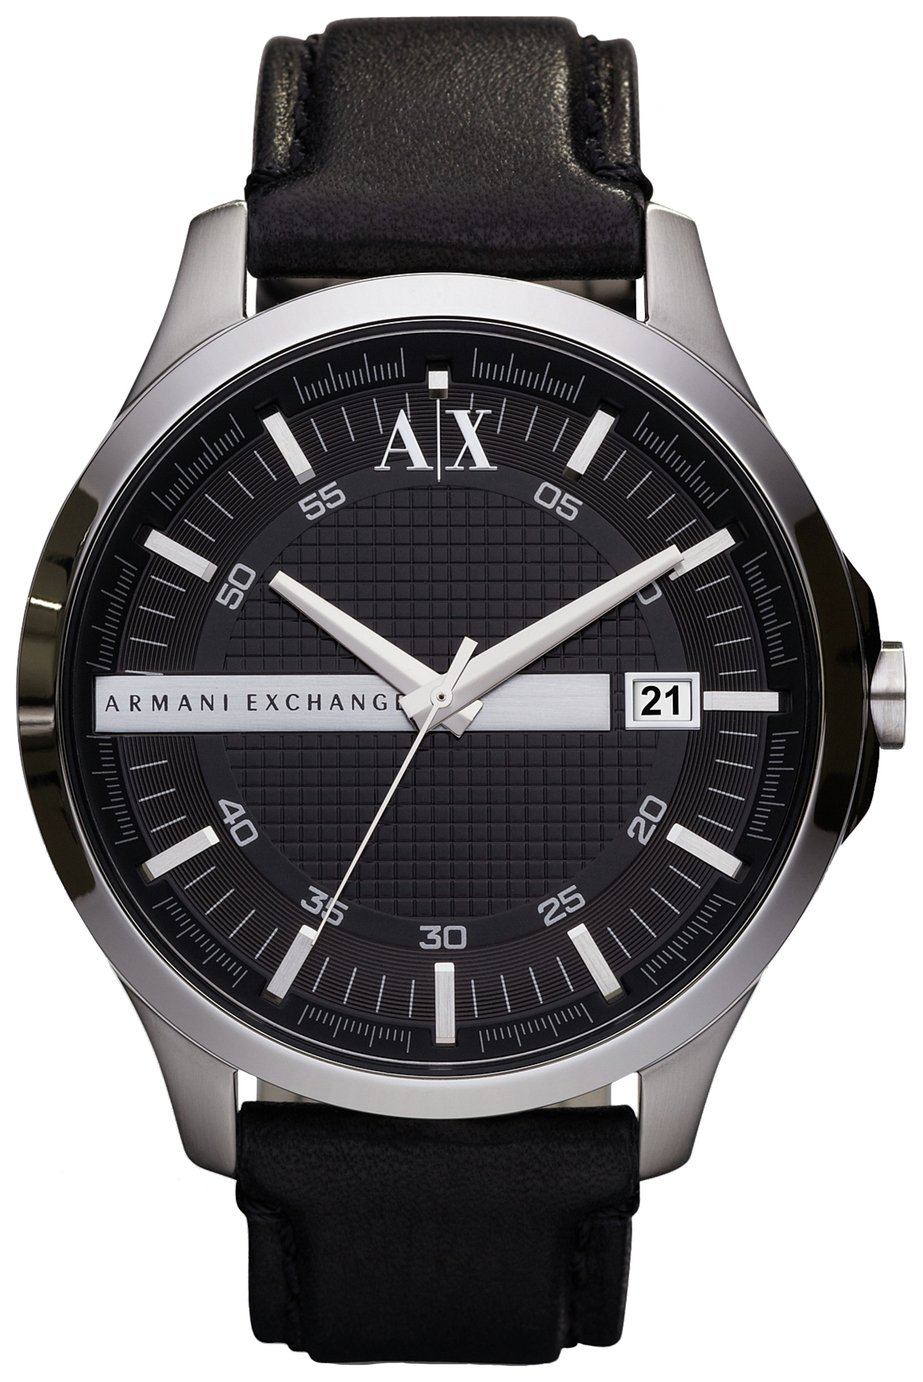 Image of Armani Exchange AX2101 Men's Date Leather Strap Watch